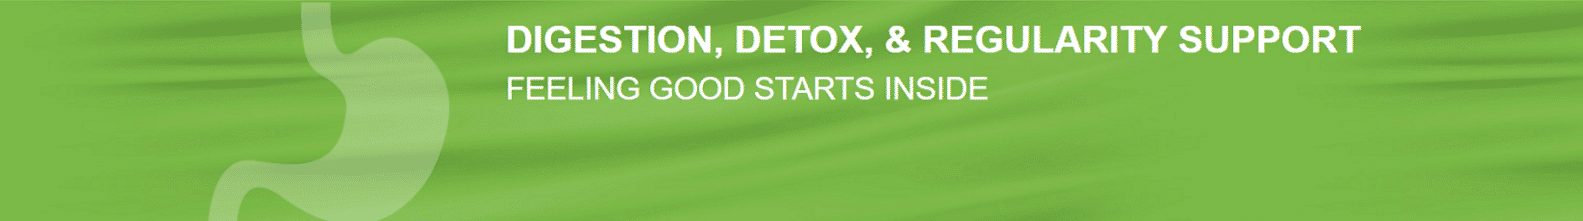 Detox, cleanse and regularity with Reliv